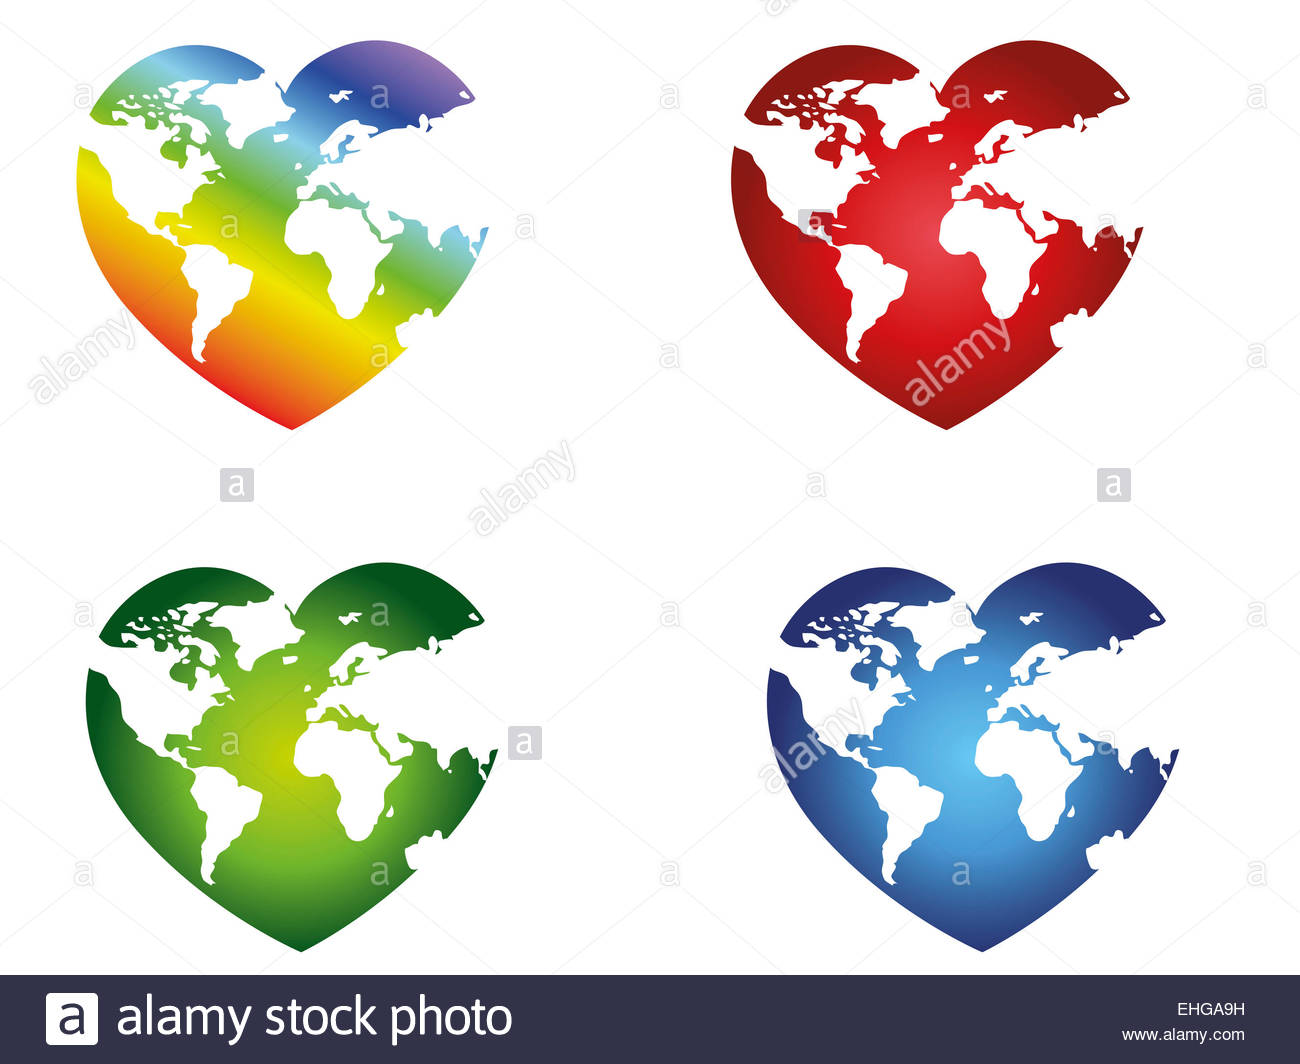 Heart Shaped World Map Stock Photos & Heart Shaped World Map Stock.